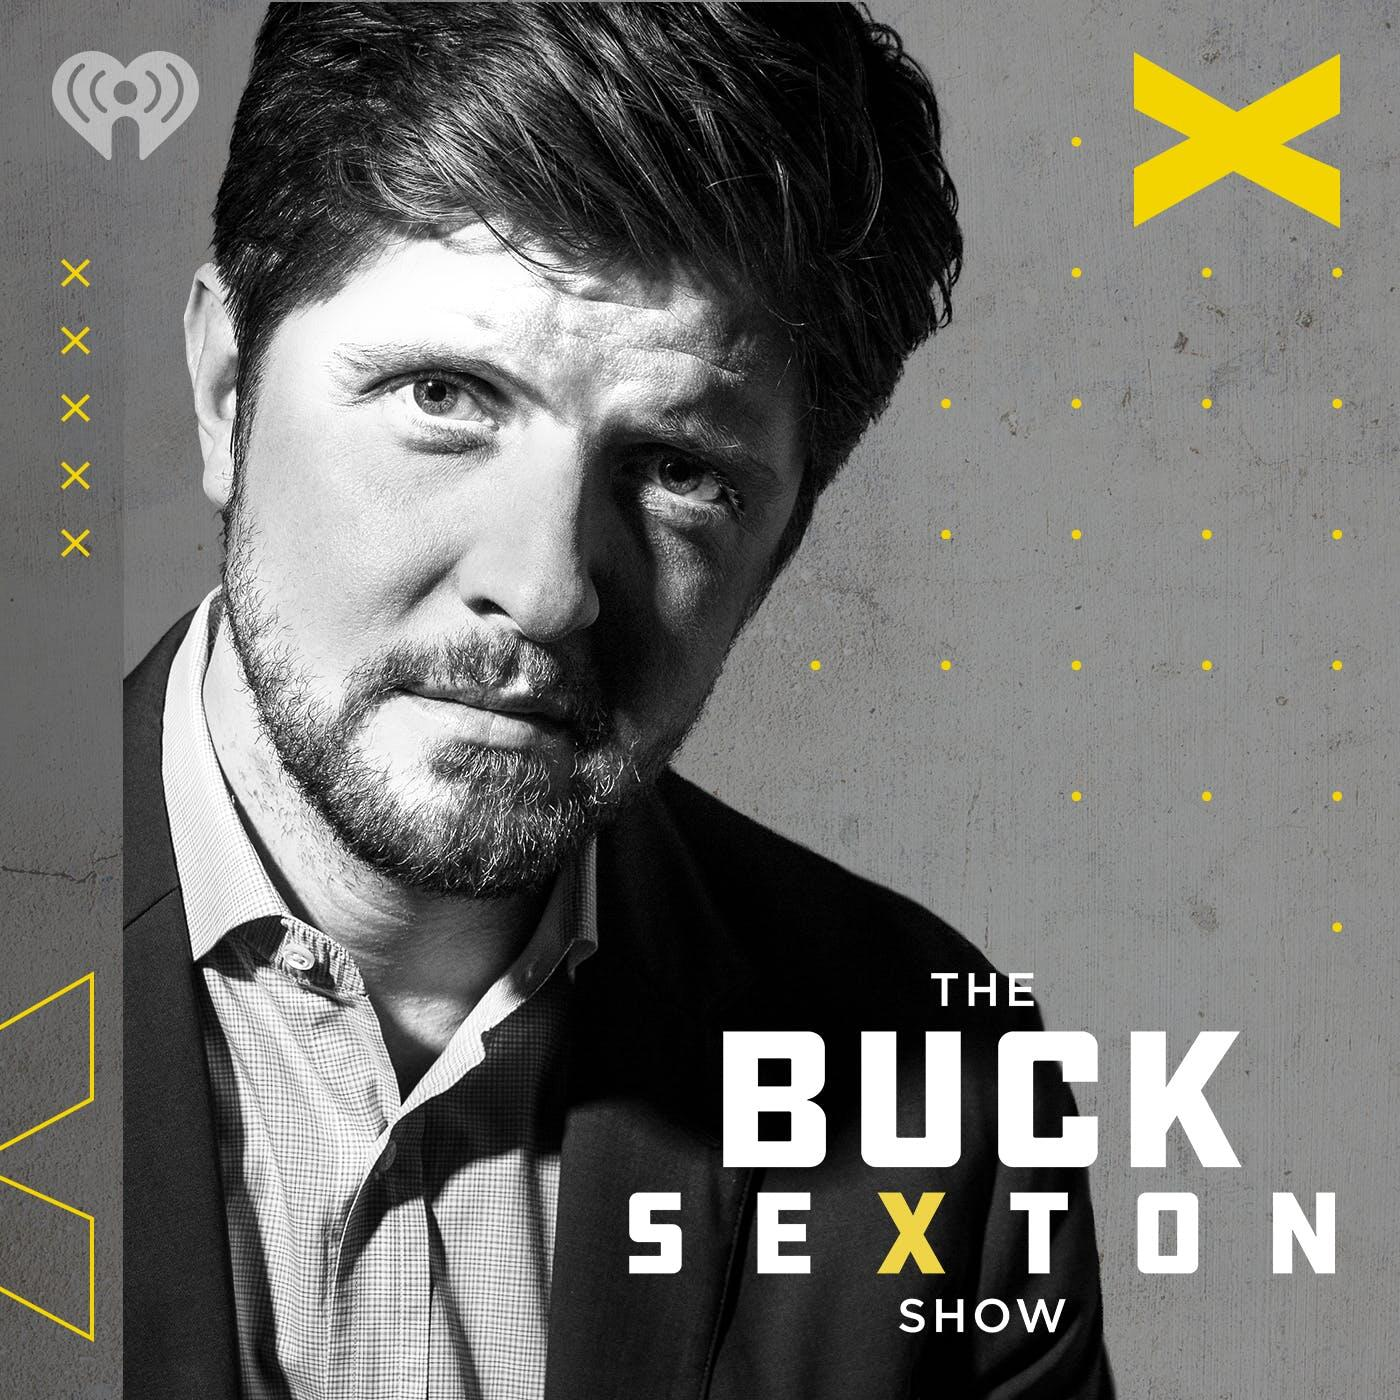 Listen to the The Buck Sexton Show Episode - Democrats Vegas Royal Rumble on iHeartRadio | iHeartRadio